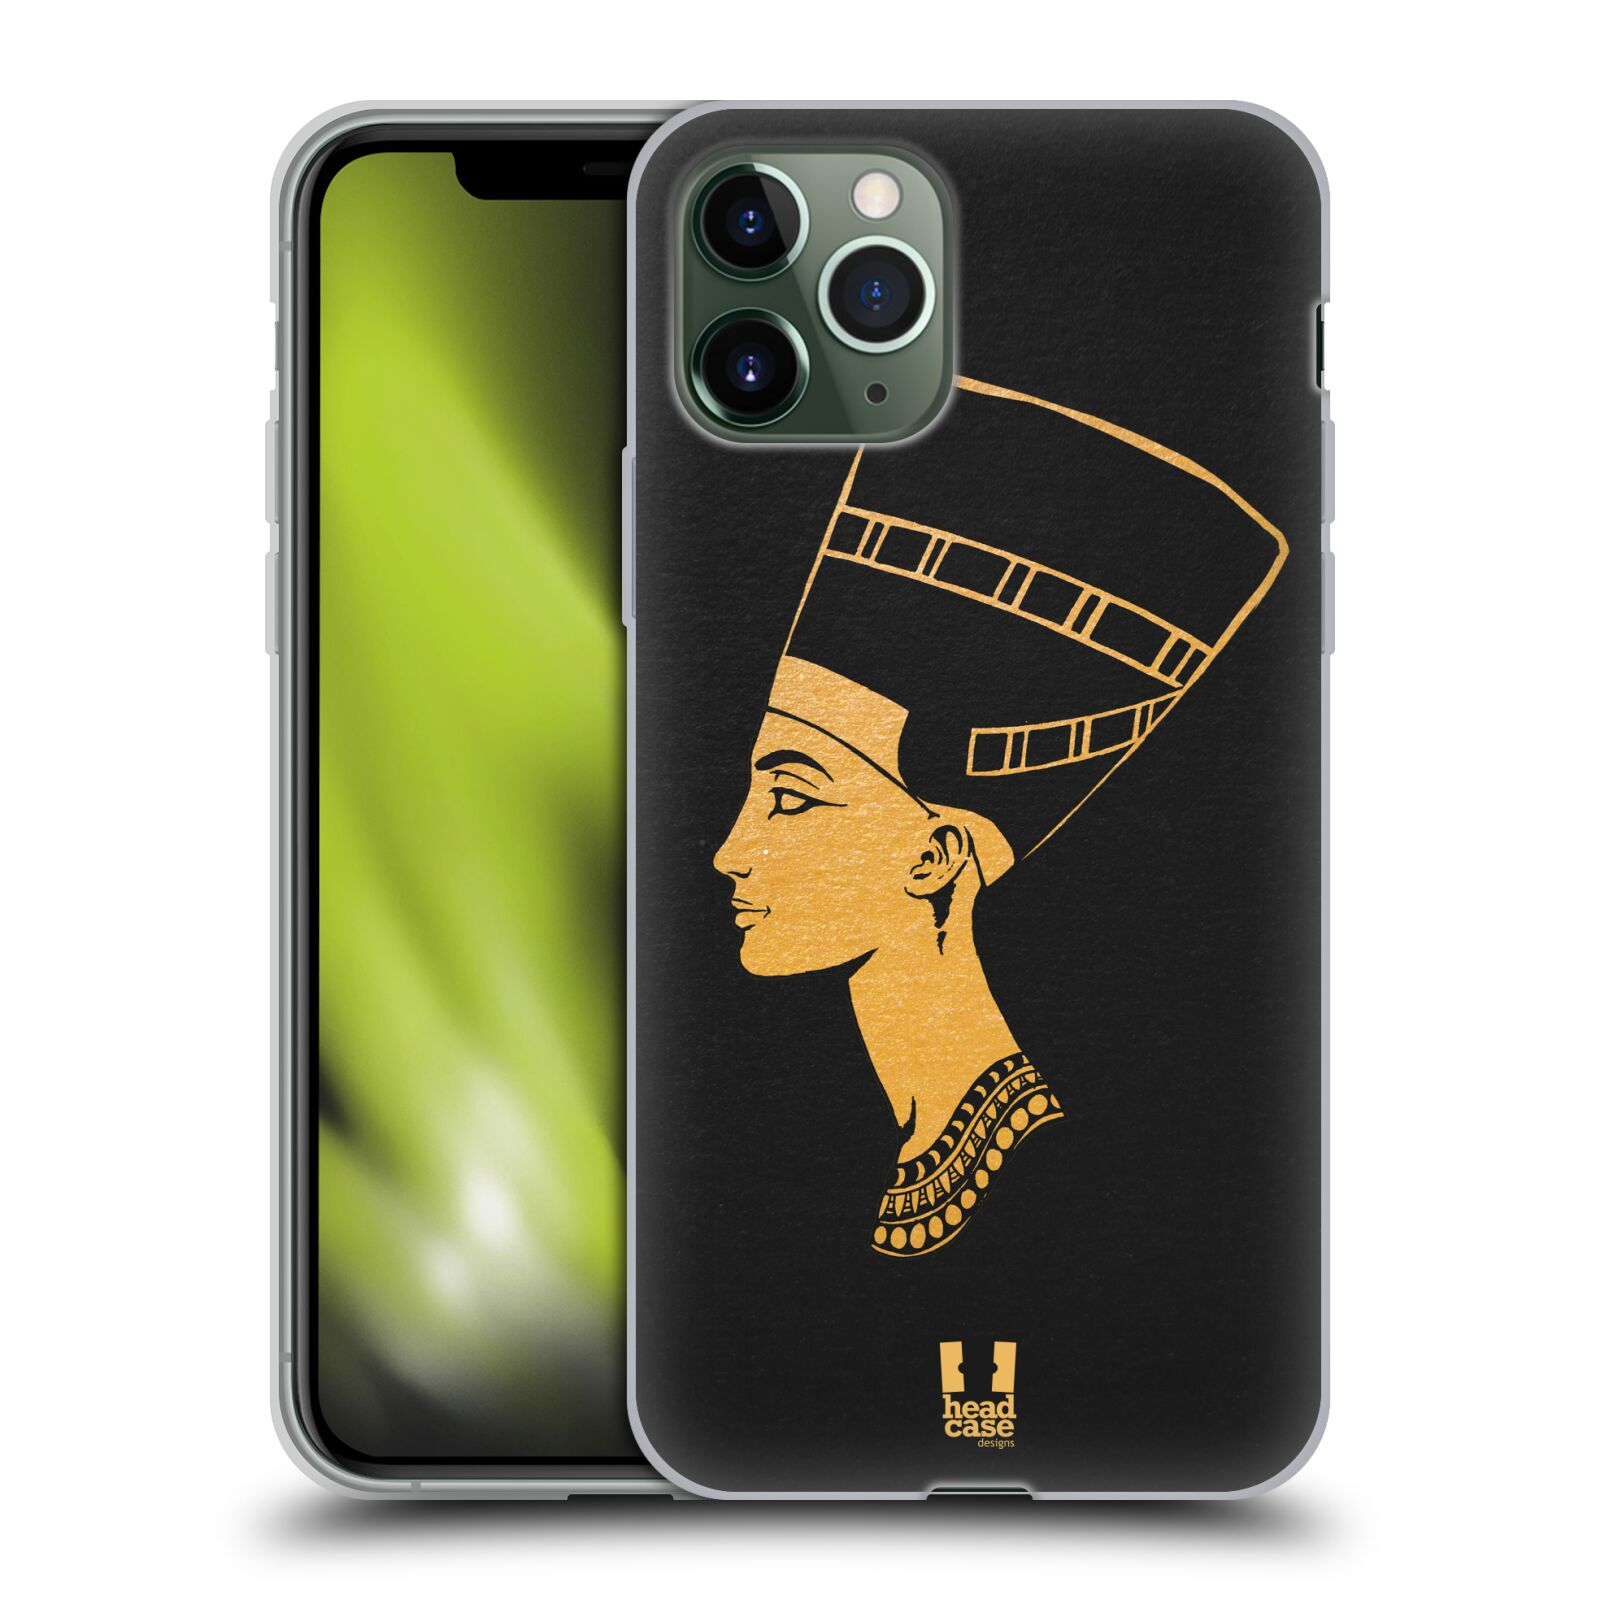 iphone 7 kryt adidas - Silikonové pouzdro na mobil Apple iPhone 11 Pro - Head Case - EGYPT NEFERTITI